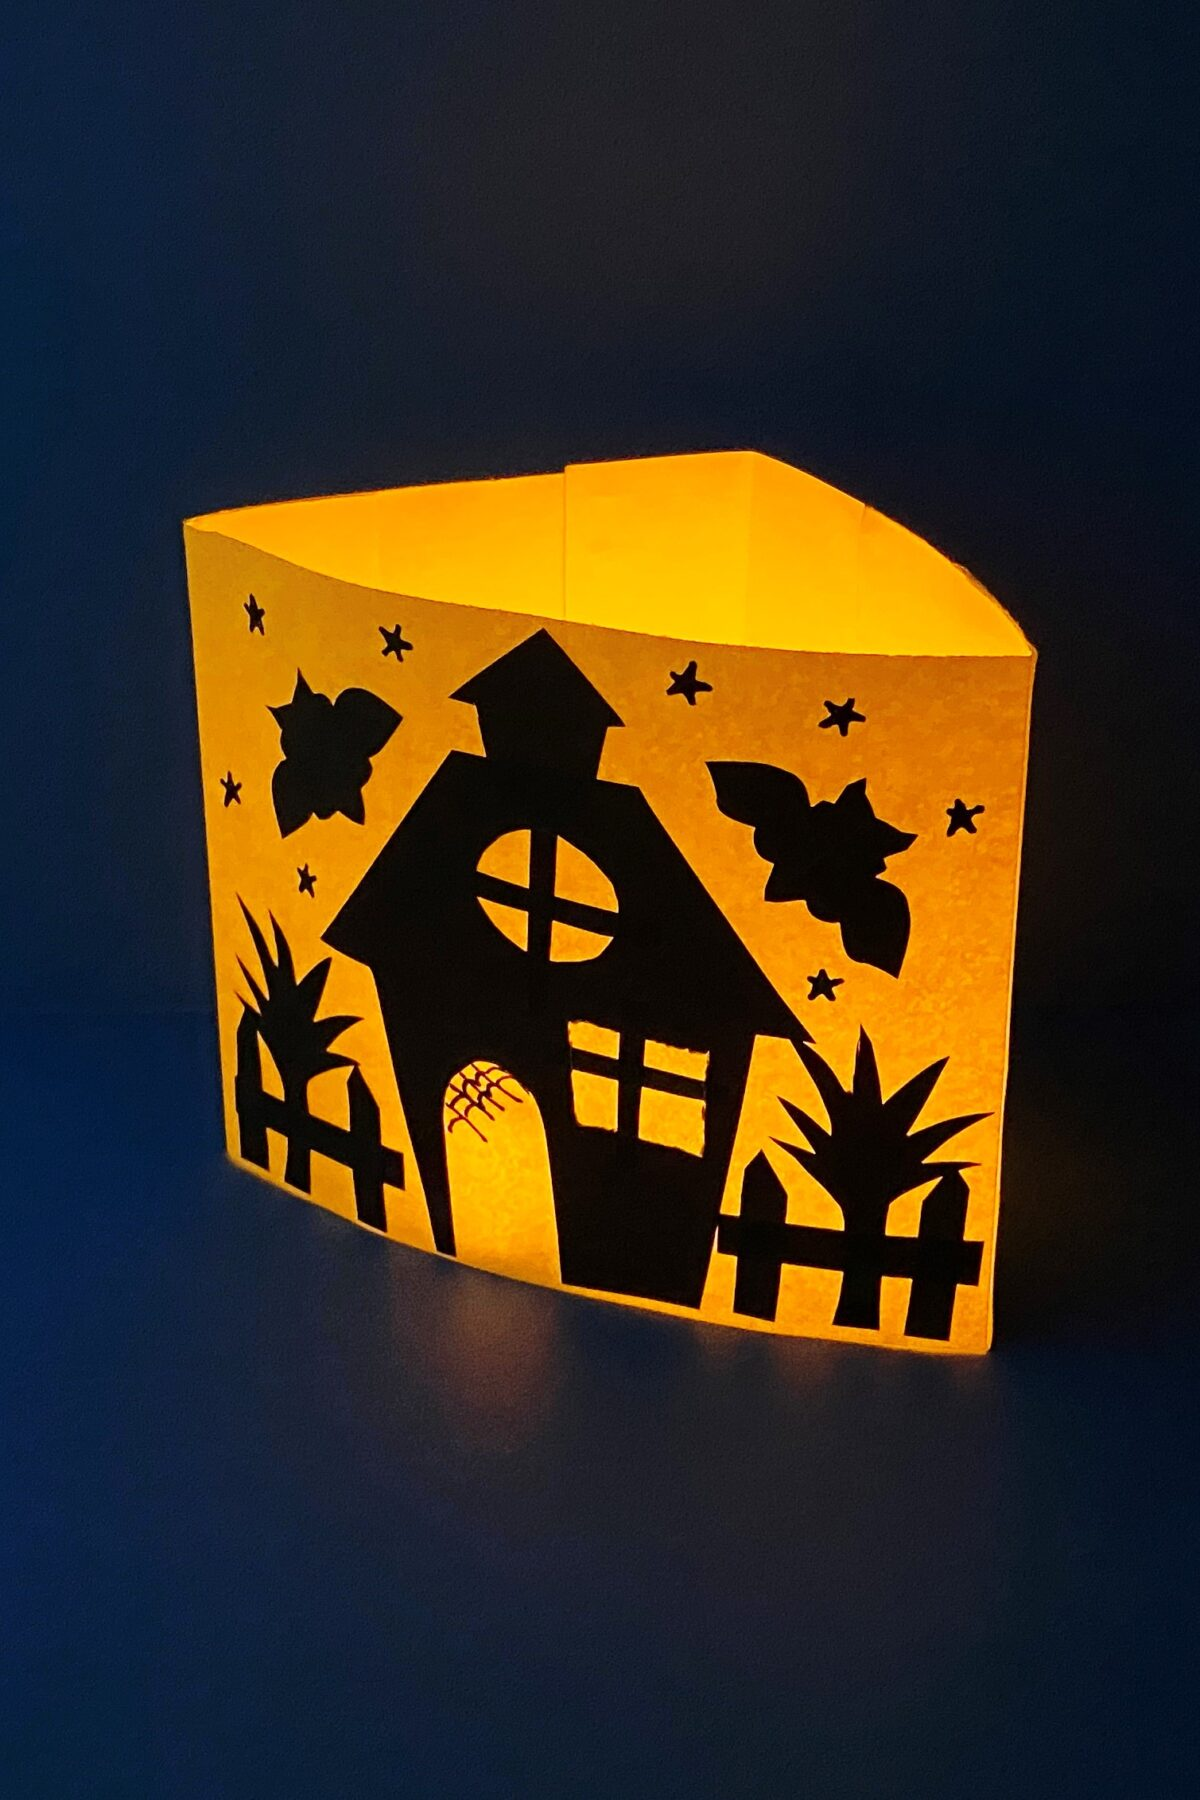 This simple haunted house luminary craft is sure to make a great addition to your Halloween decor, and is a fun and easy kids Halloween craft.